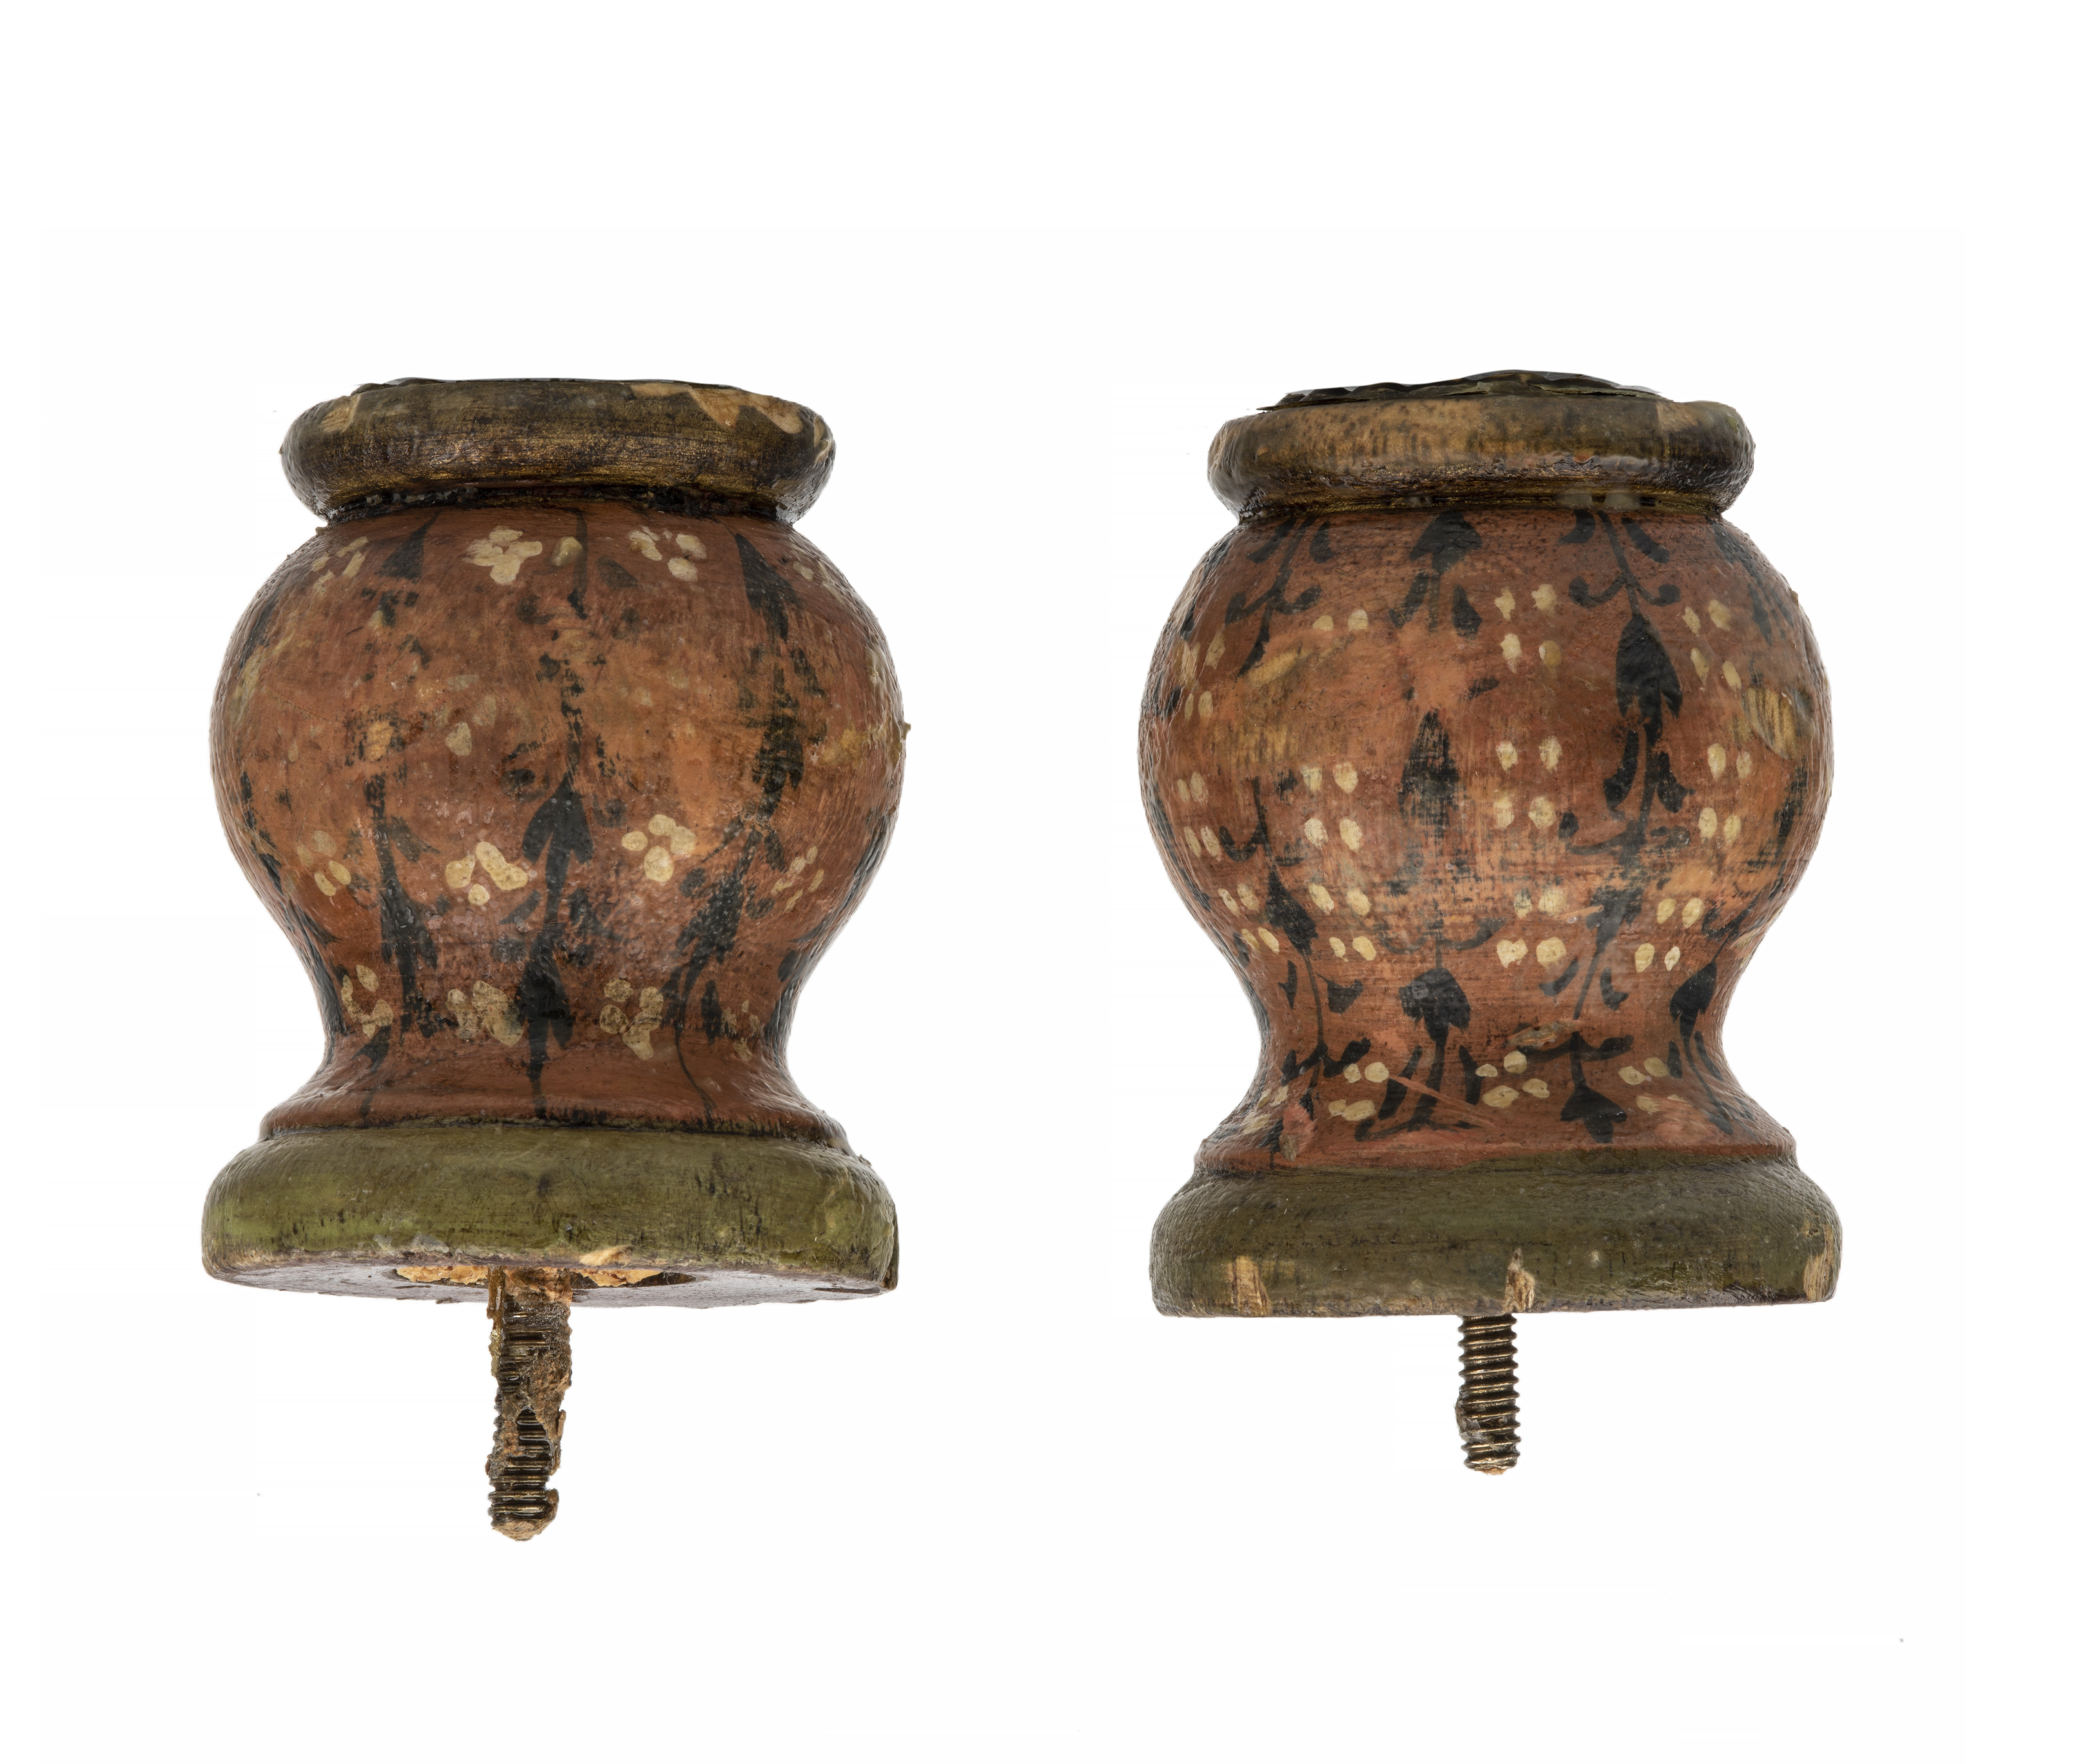 A Pair Of  Vintage European Antique Style Polychrome Decorated Finial Knobs